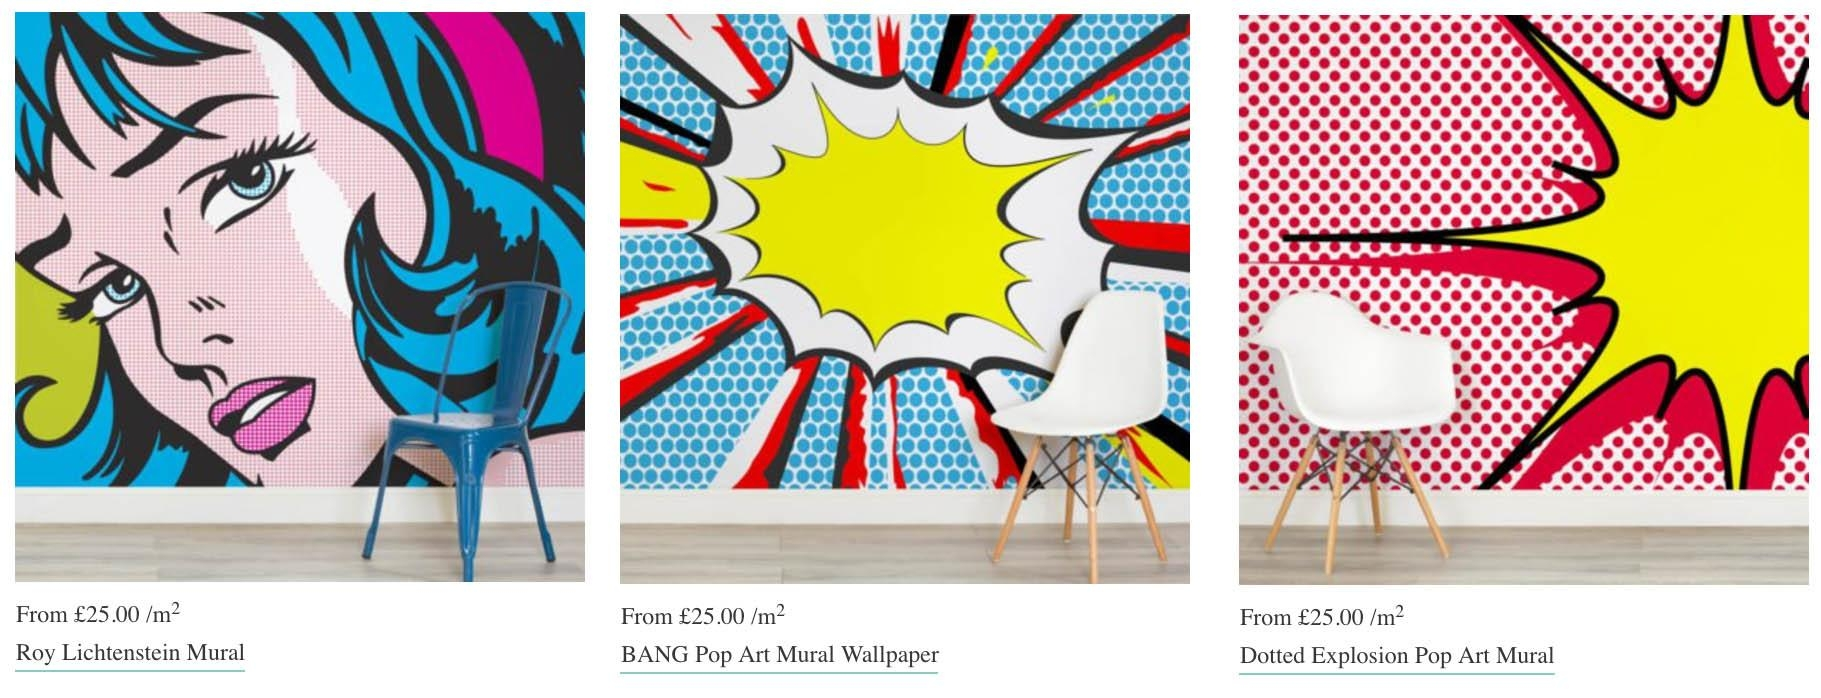 This Is Some Pretty Cool Retro Wallpaper | Retromash Throughout Pop Art Wallpaper For Walls (Image 16 of 20)